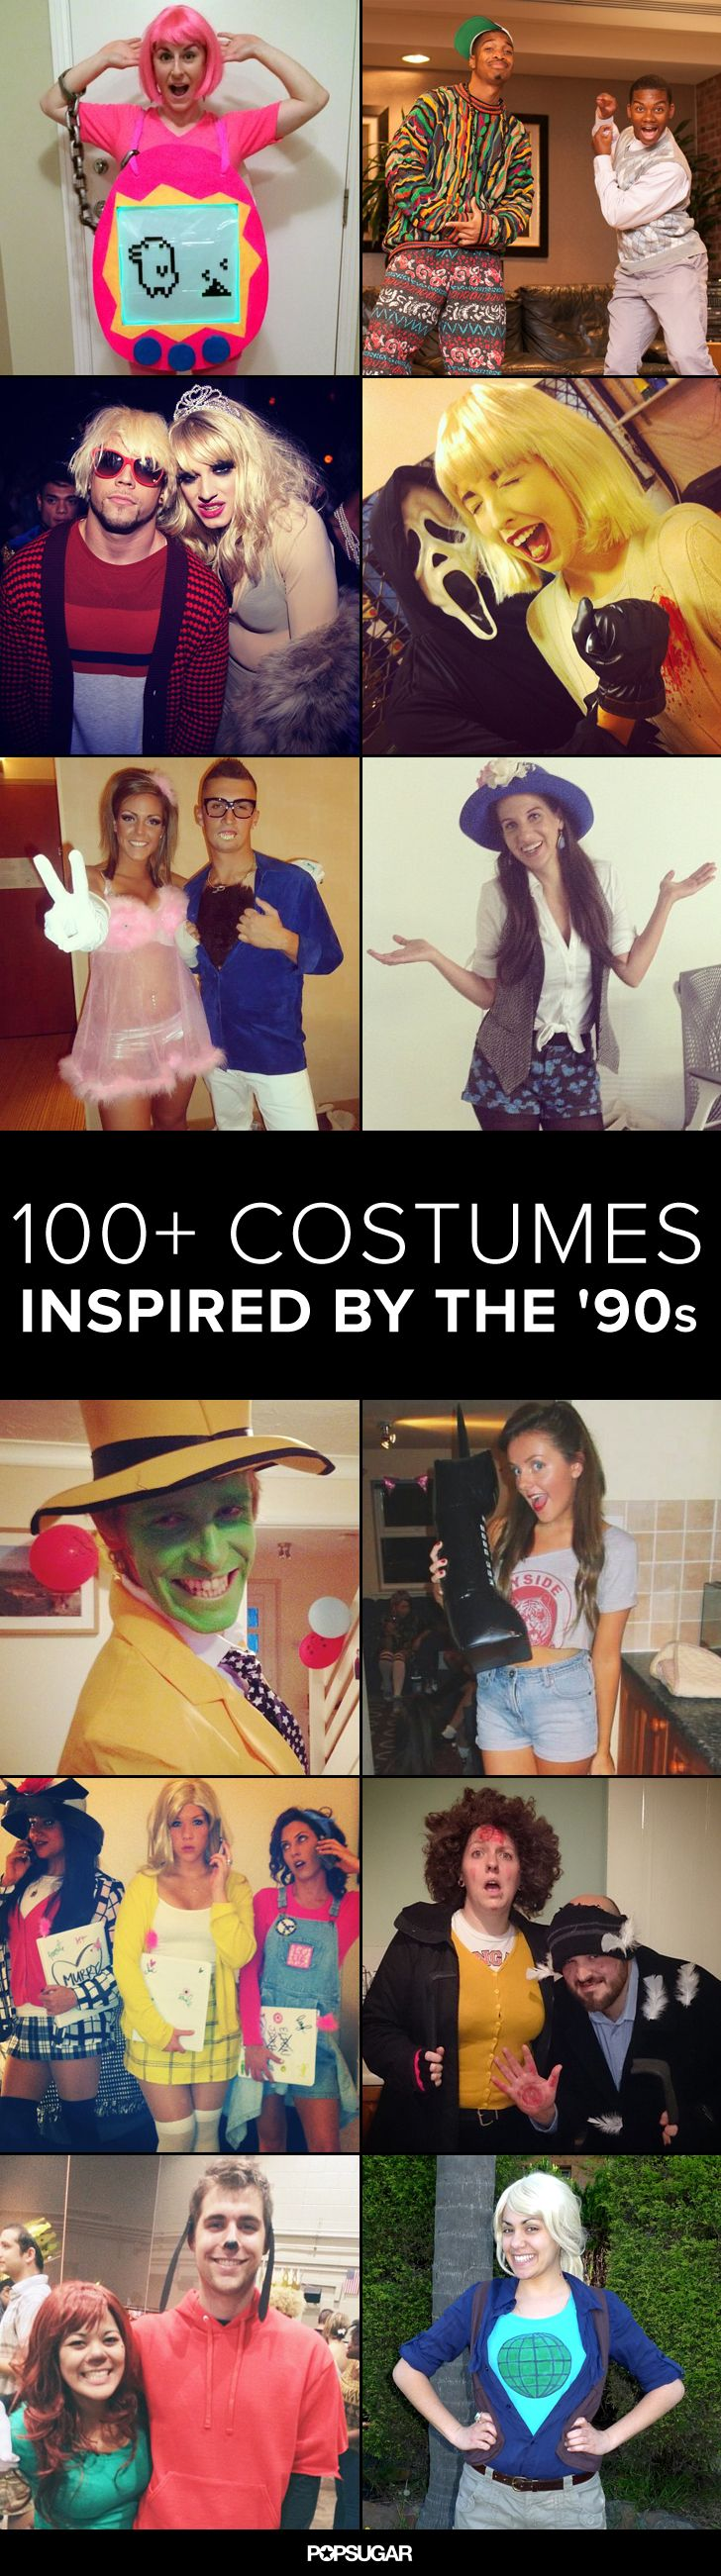 100+ Halloween Costume Ideas Inspired by the '90s | Halloween ...